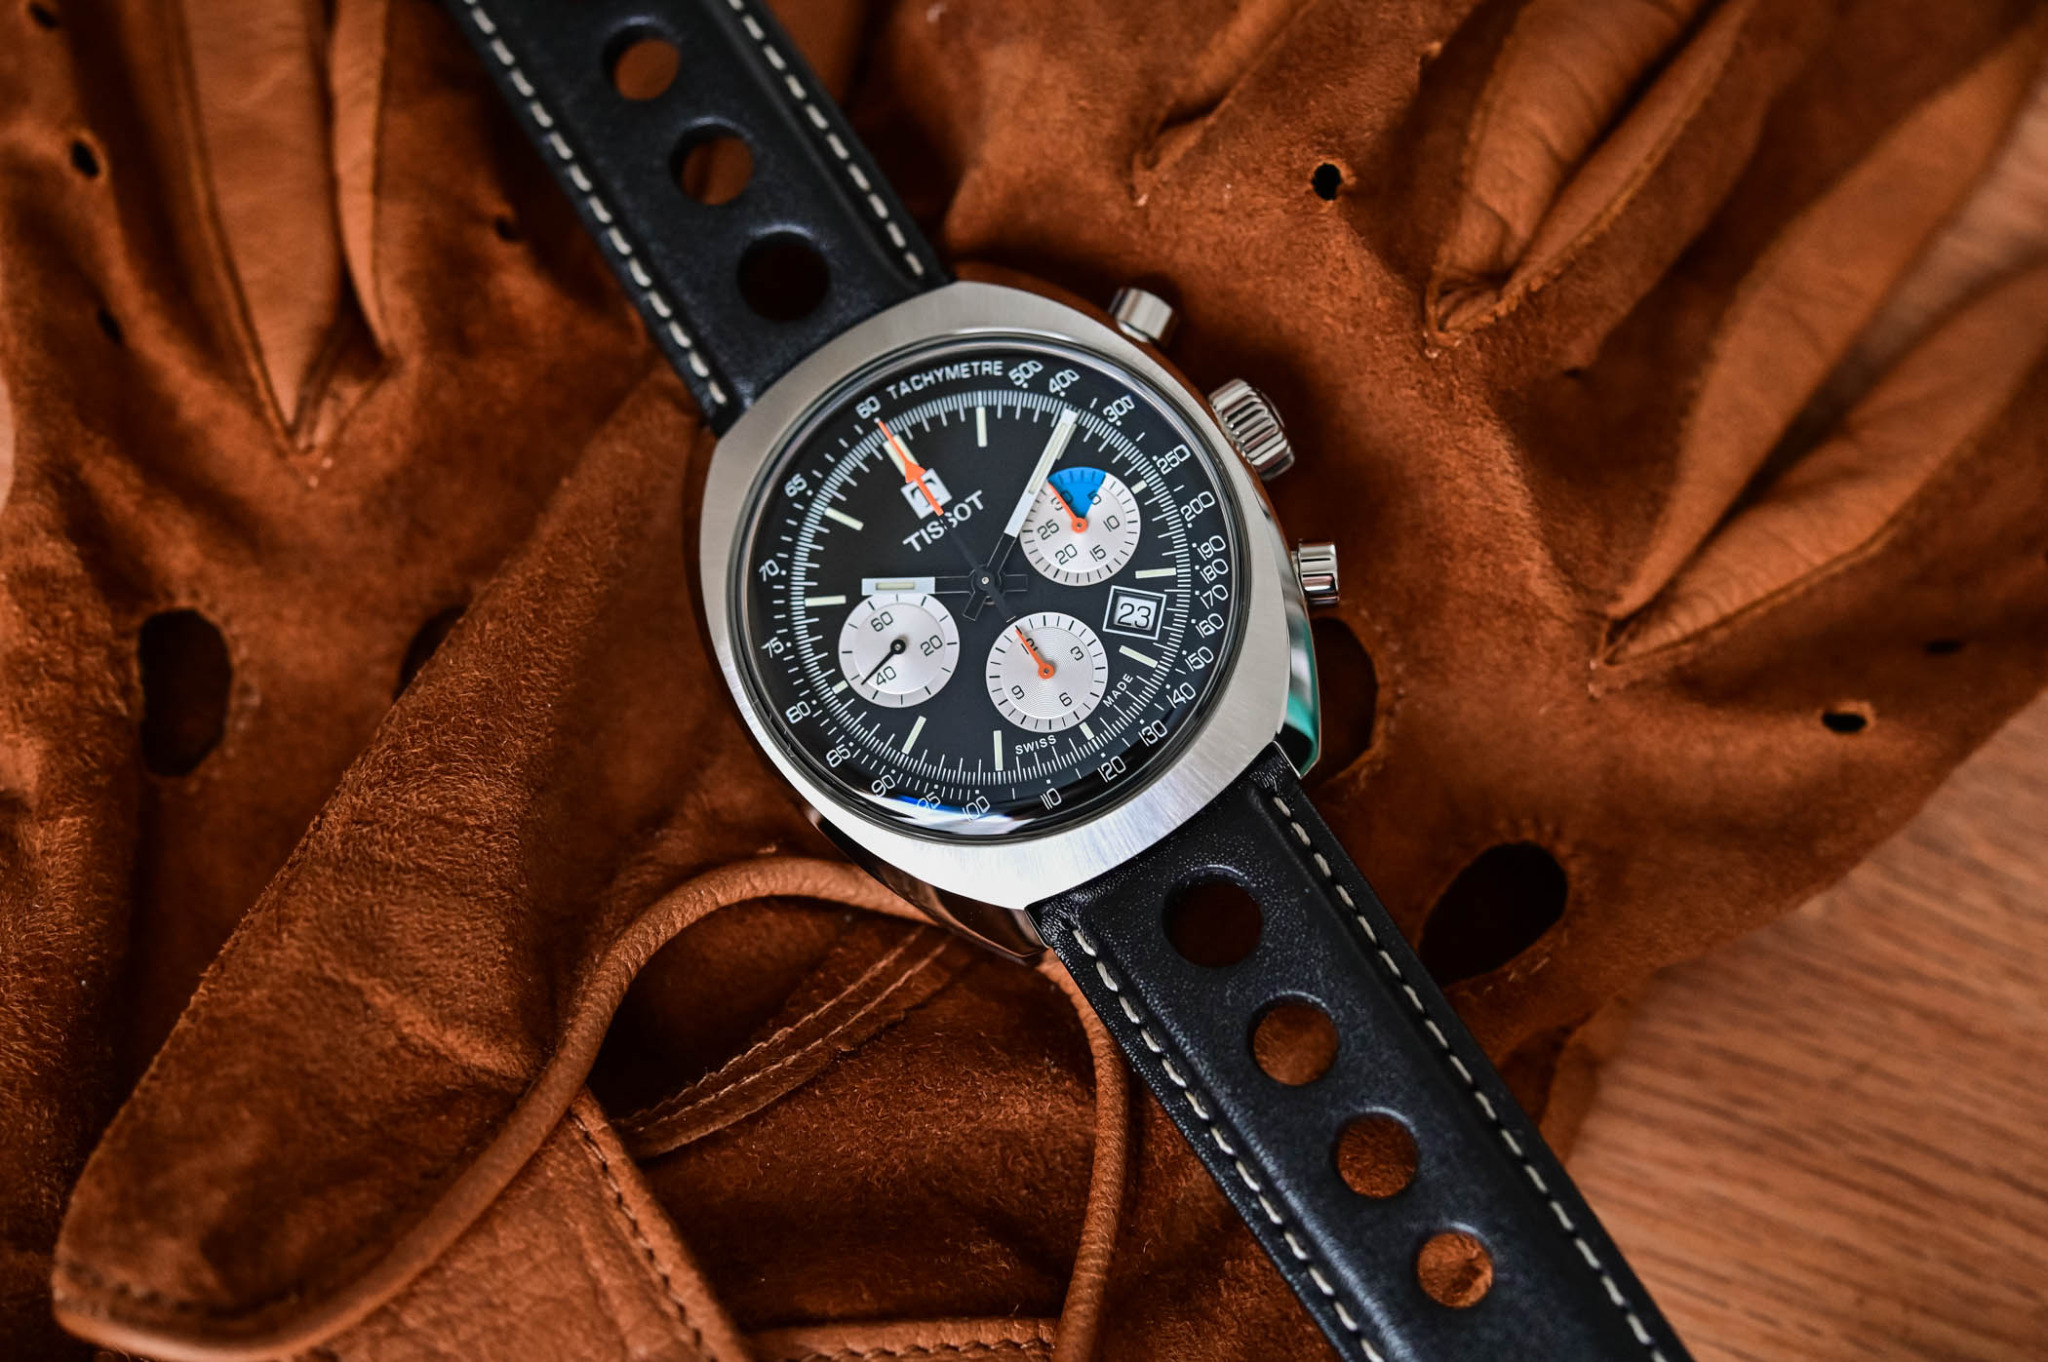 tissot-heritage-1973-chronograph-T124.427.16.051.00-review-9-2048x1362.jpg